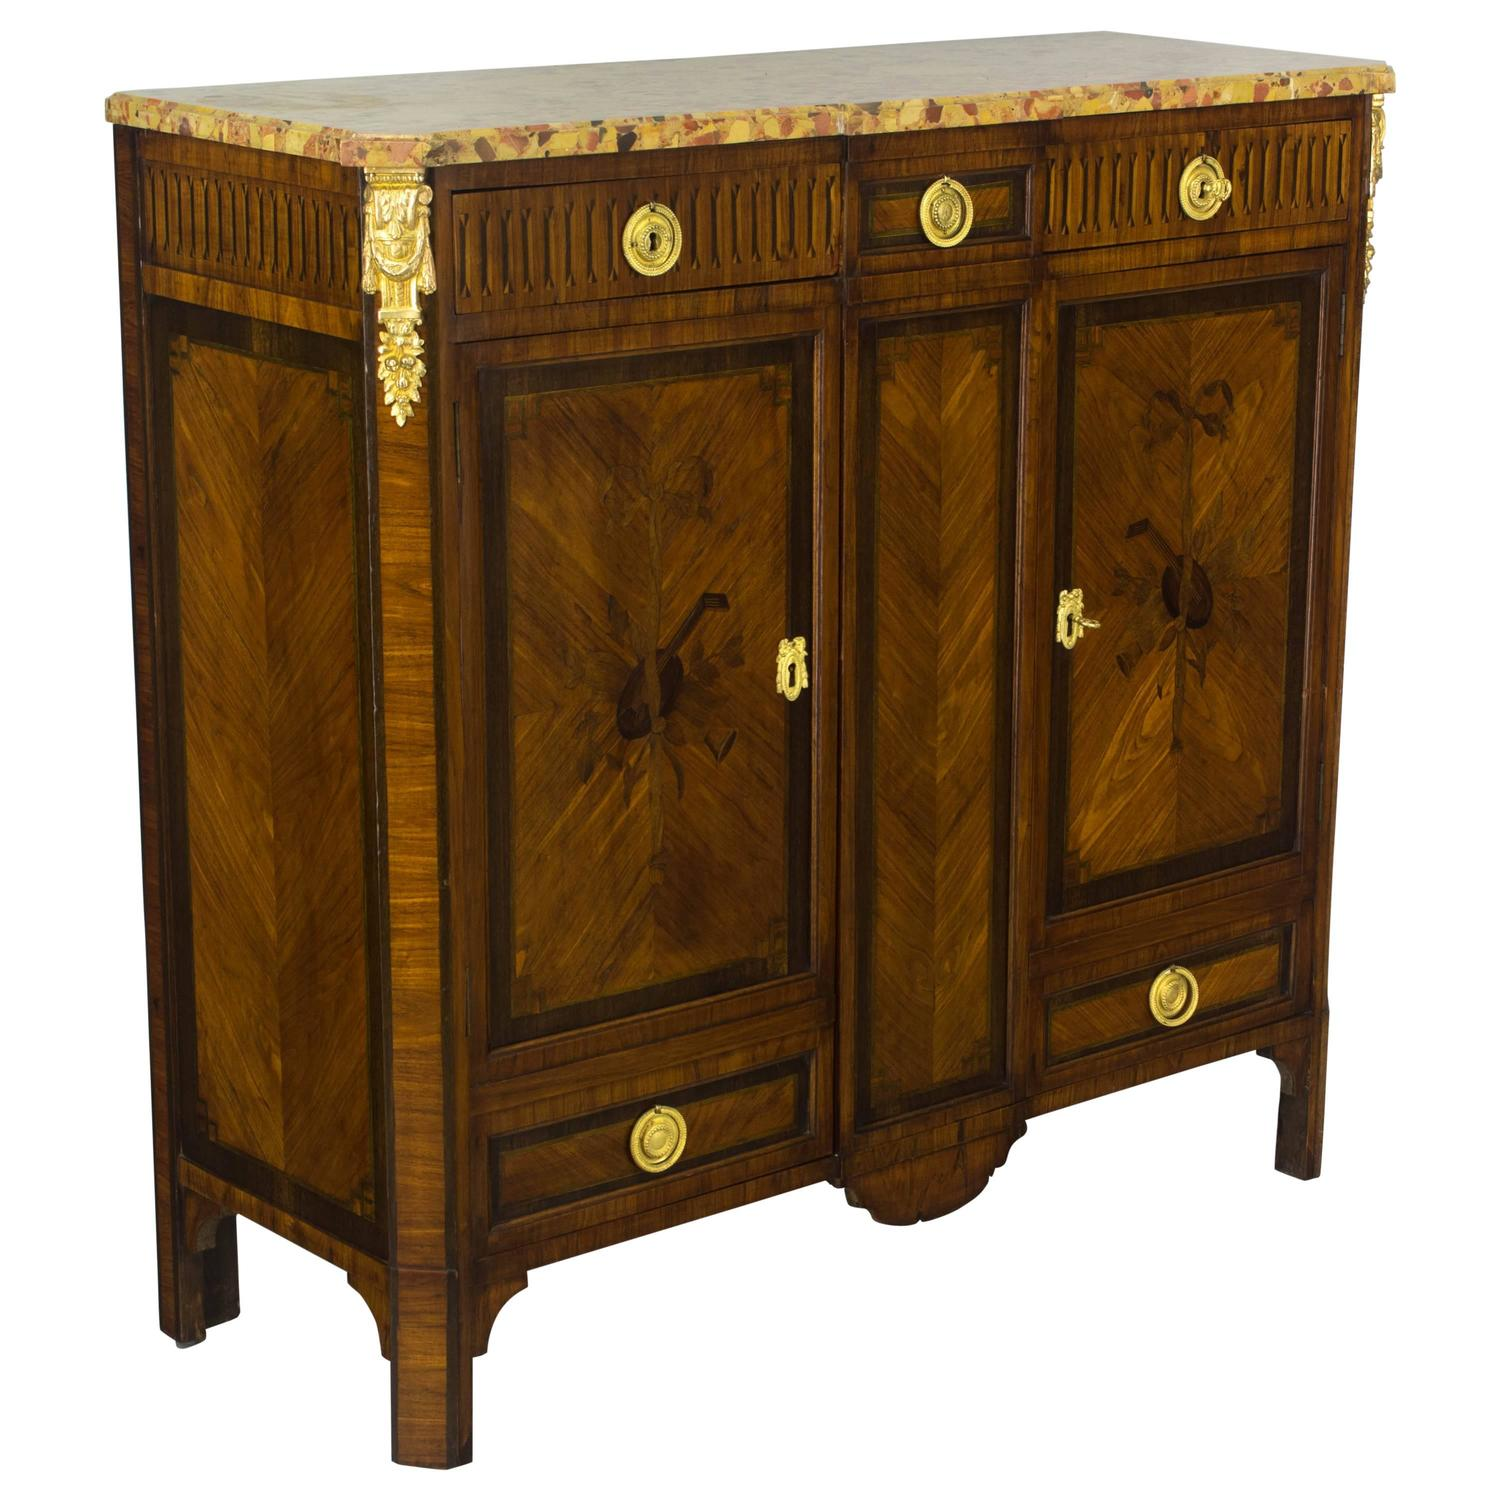 19th century louis xvi style marquetry buffet for sale at 1stdibs. Black Bedroom Furniture Sets. Home Design Ideas